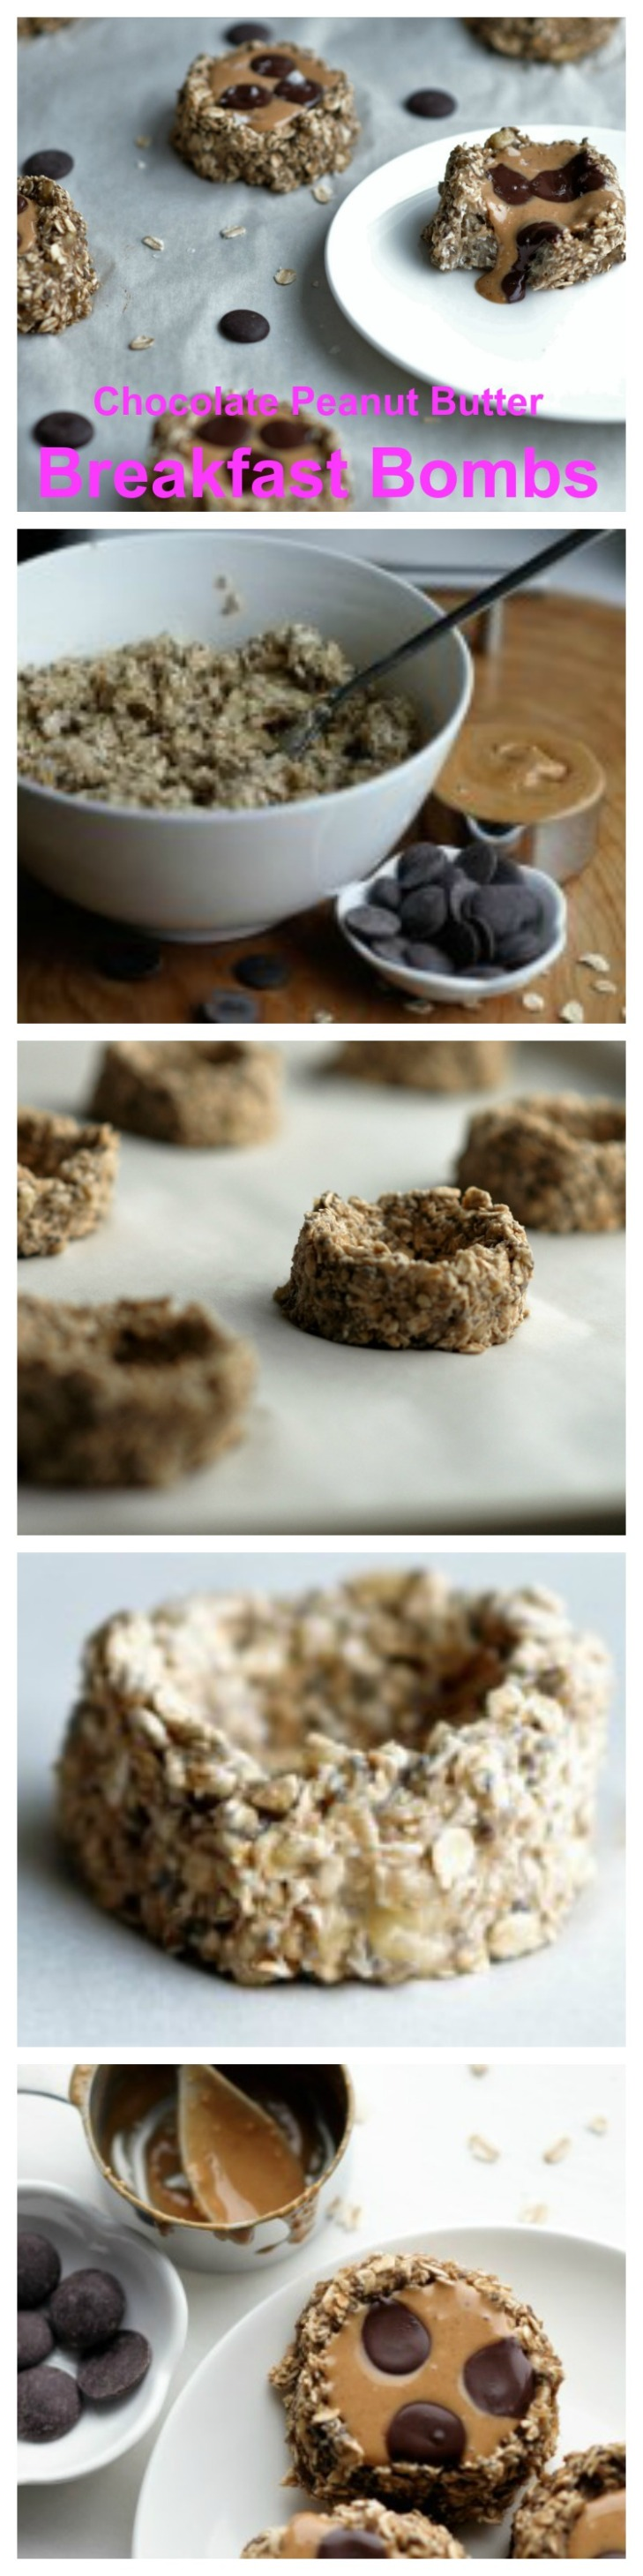 Chocolate Peanut Butter Breakfast Bombs